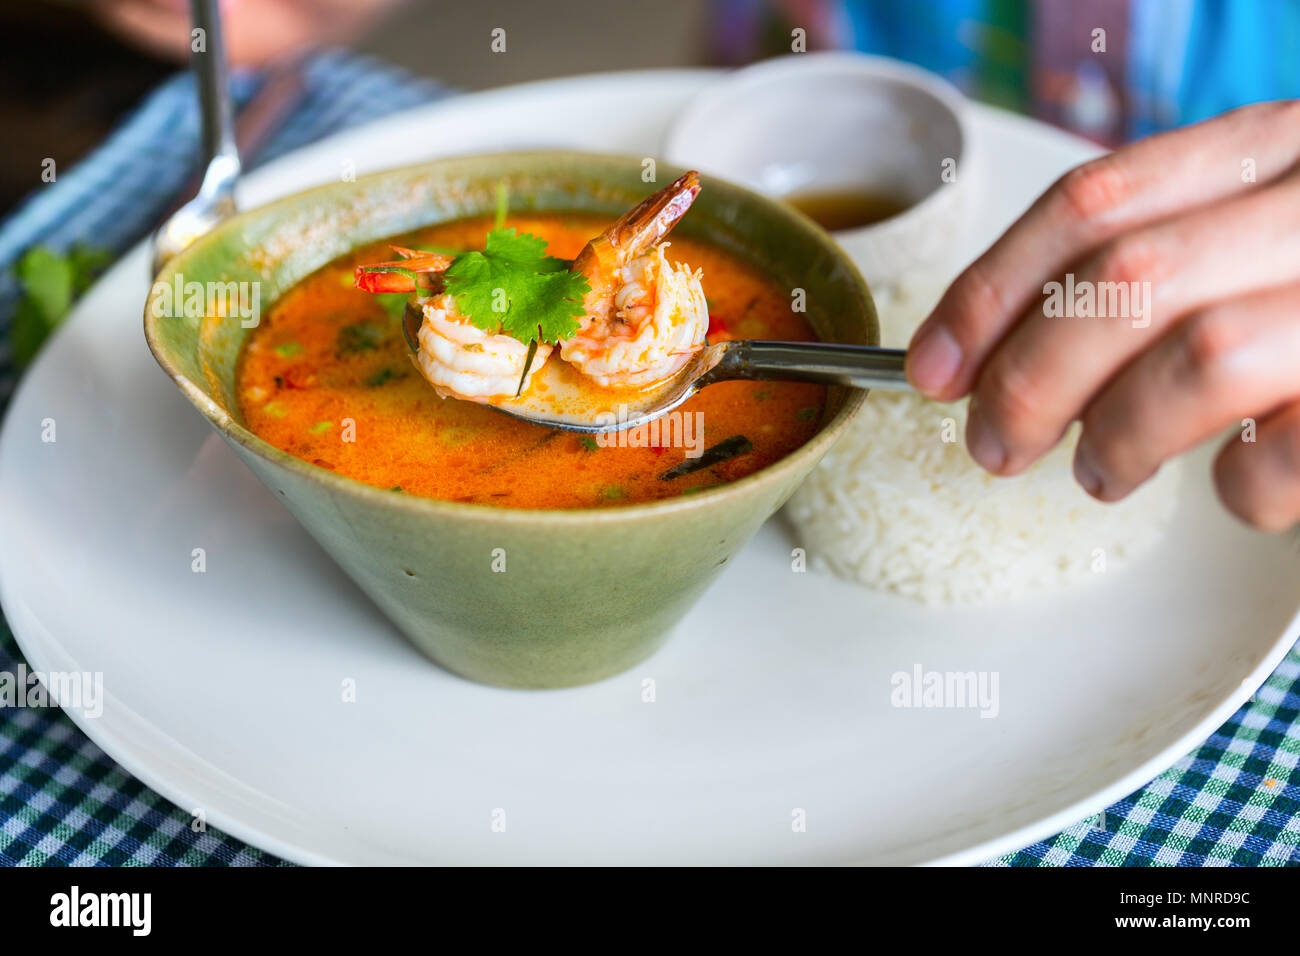 Delicious Asian Tom Yum soup served for lunch in restaurant - Stock Image